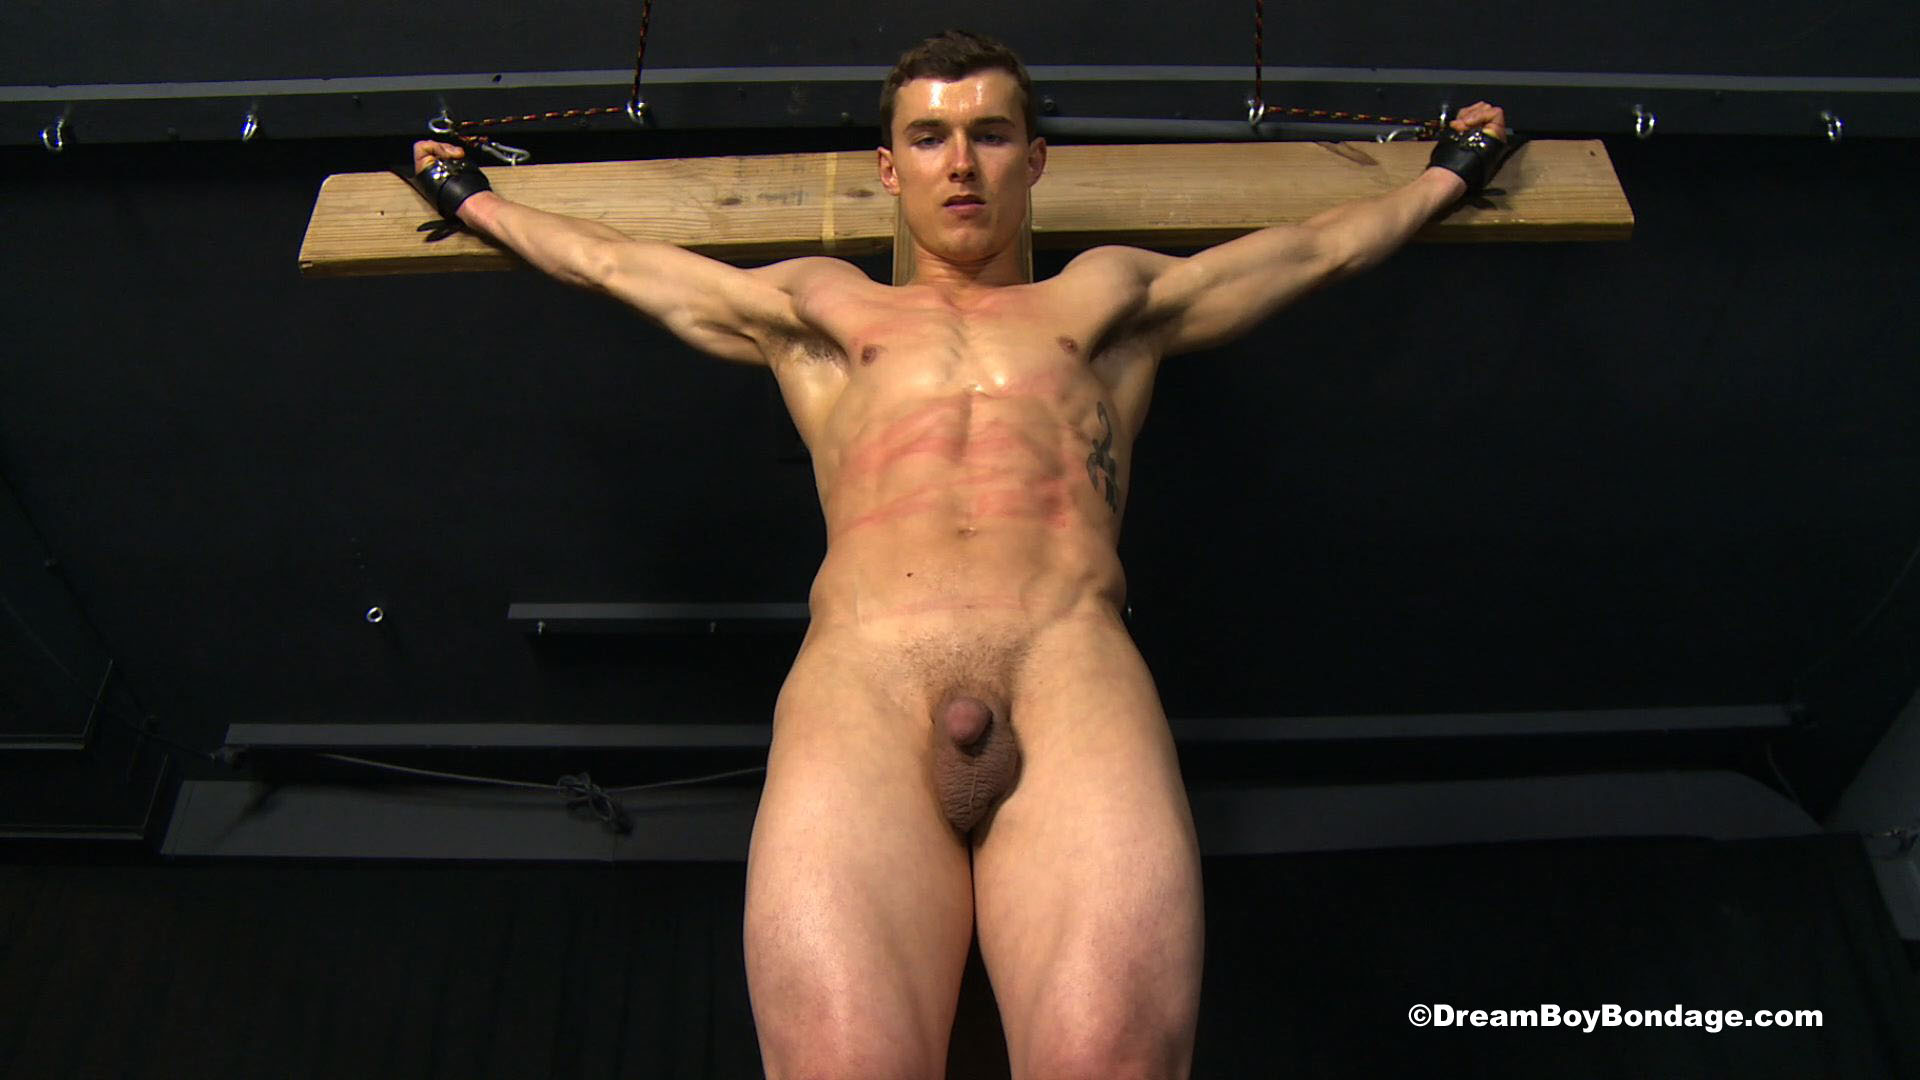 naked boy cross bondage Crucified Muscle 2